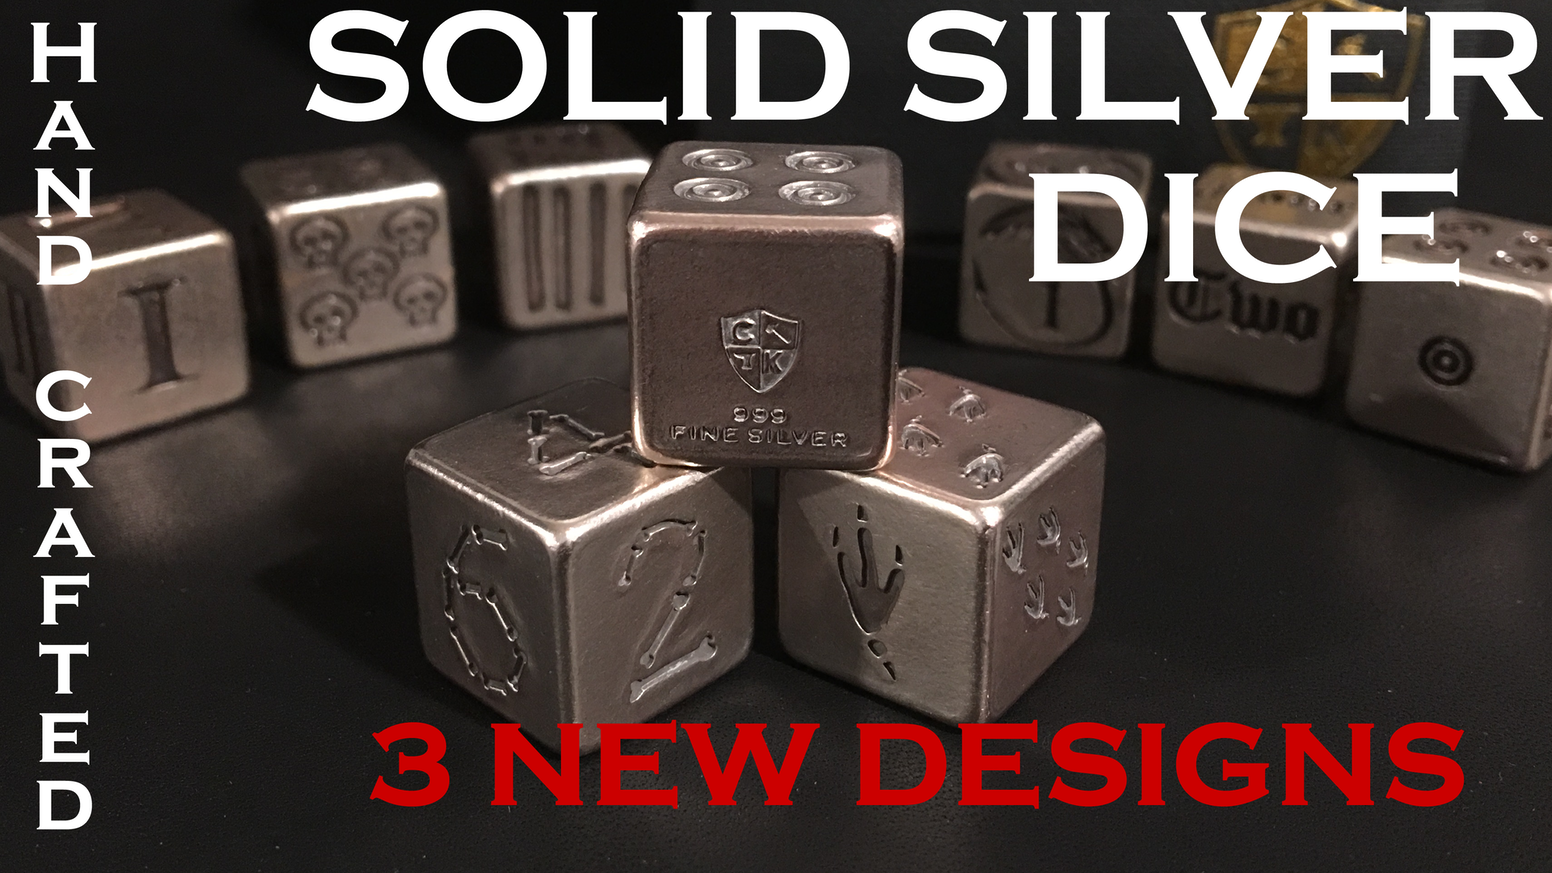 """Premium Handcrafted, """"Old World"""" Dice made out of SOLID, Silver & Copper! Your choice of Skull, Dragon, Roman, Viking, & other Designs!"""